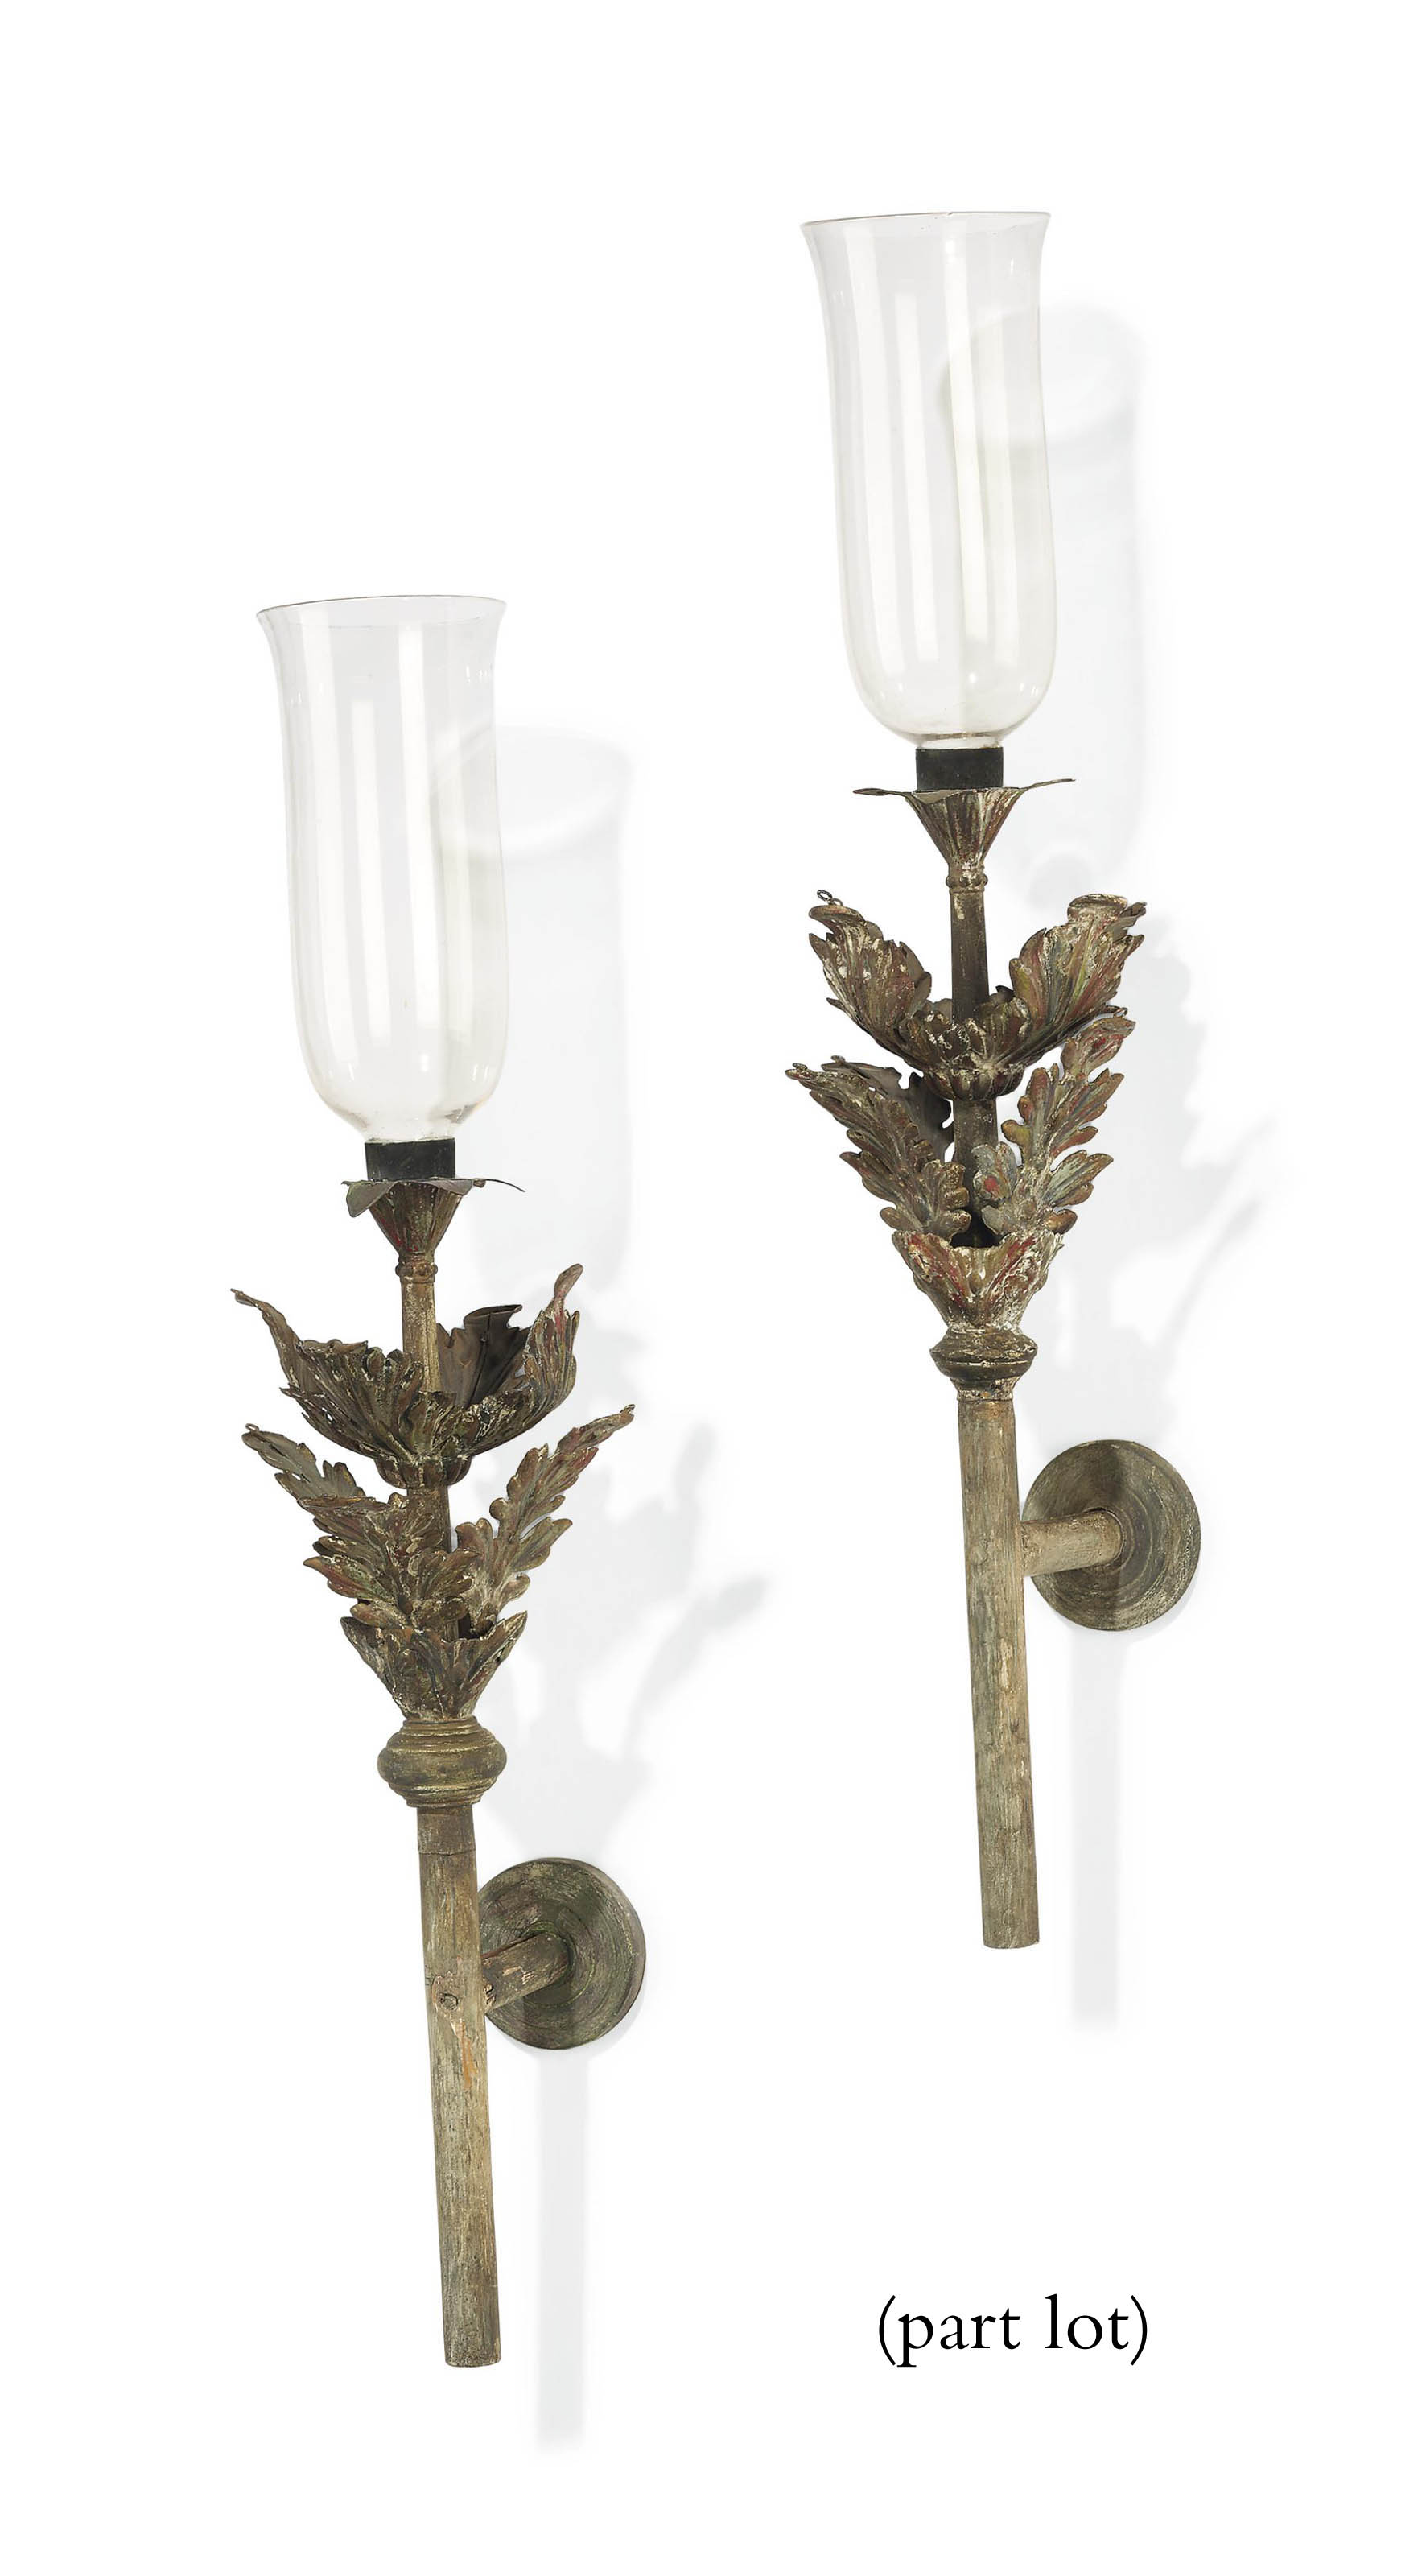 A PAIR OF ITALIAN TOLE WALL-LIGHTS